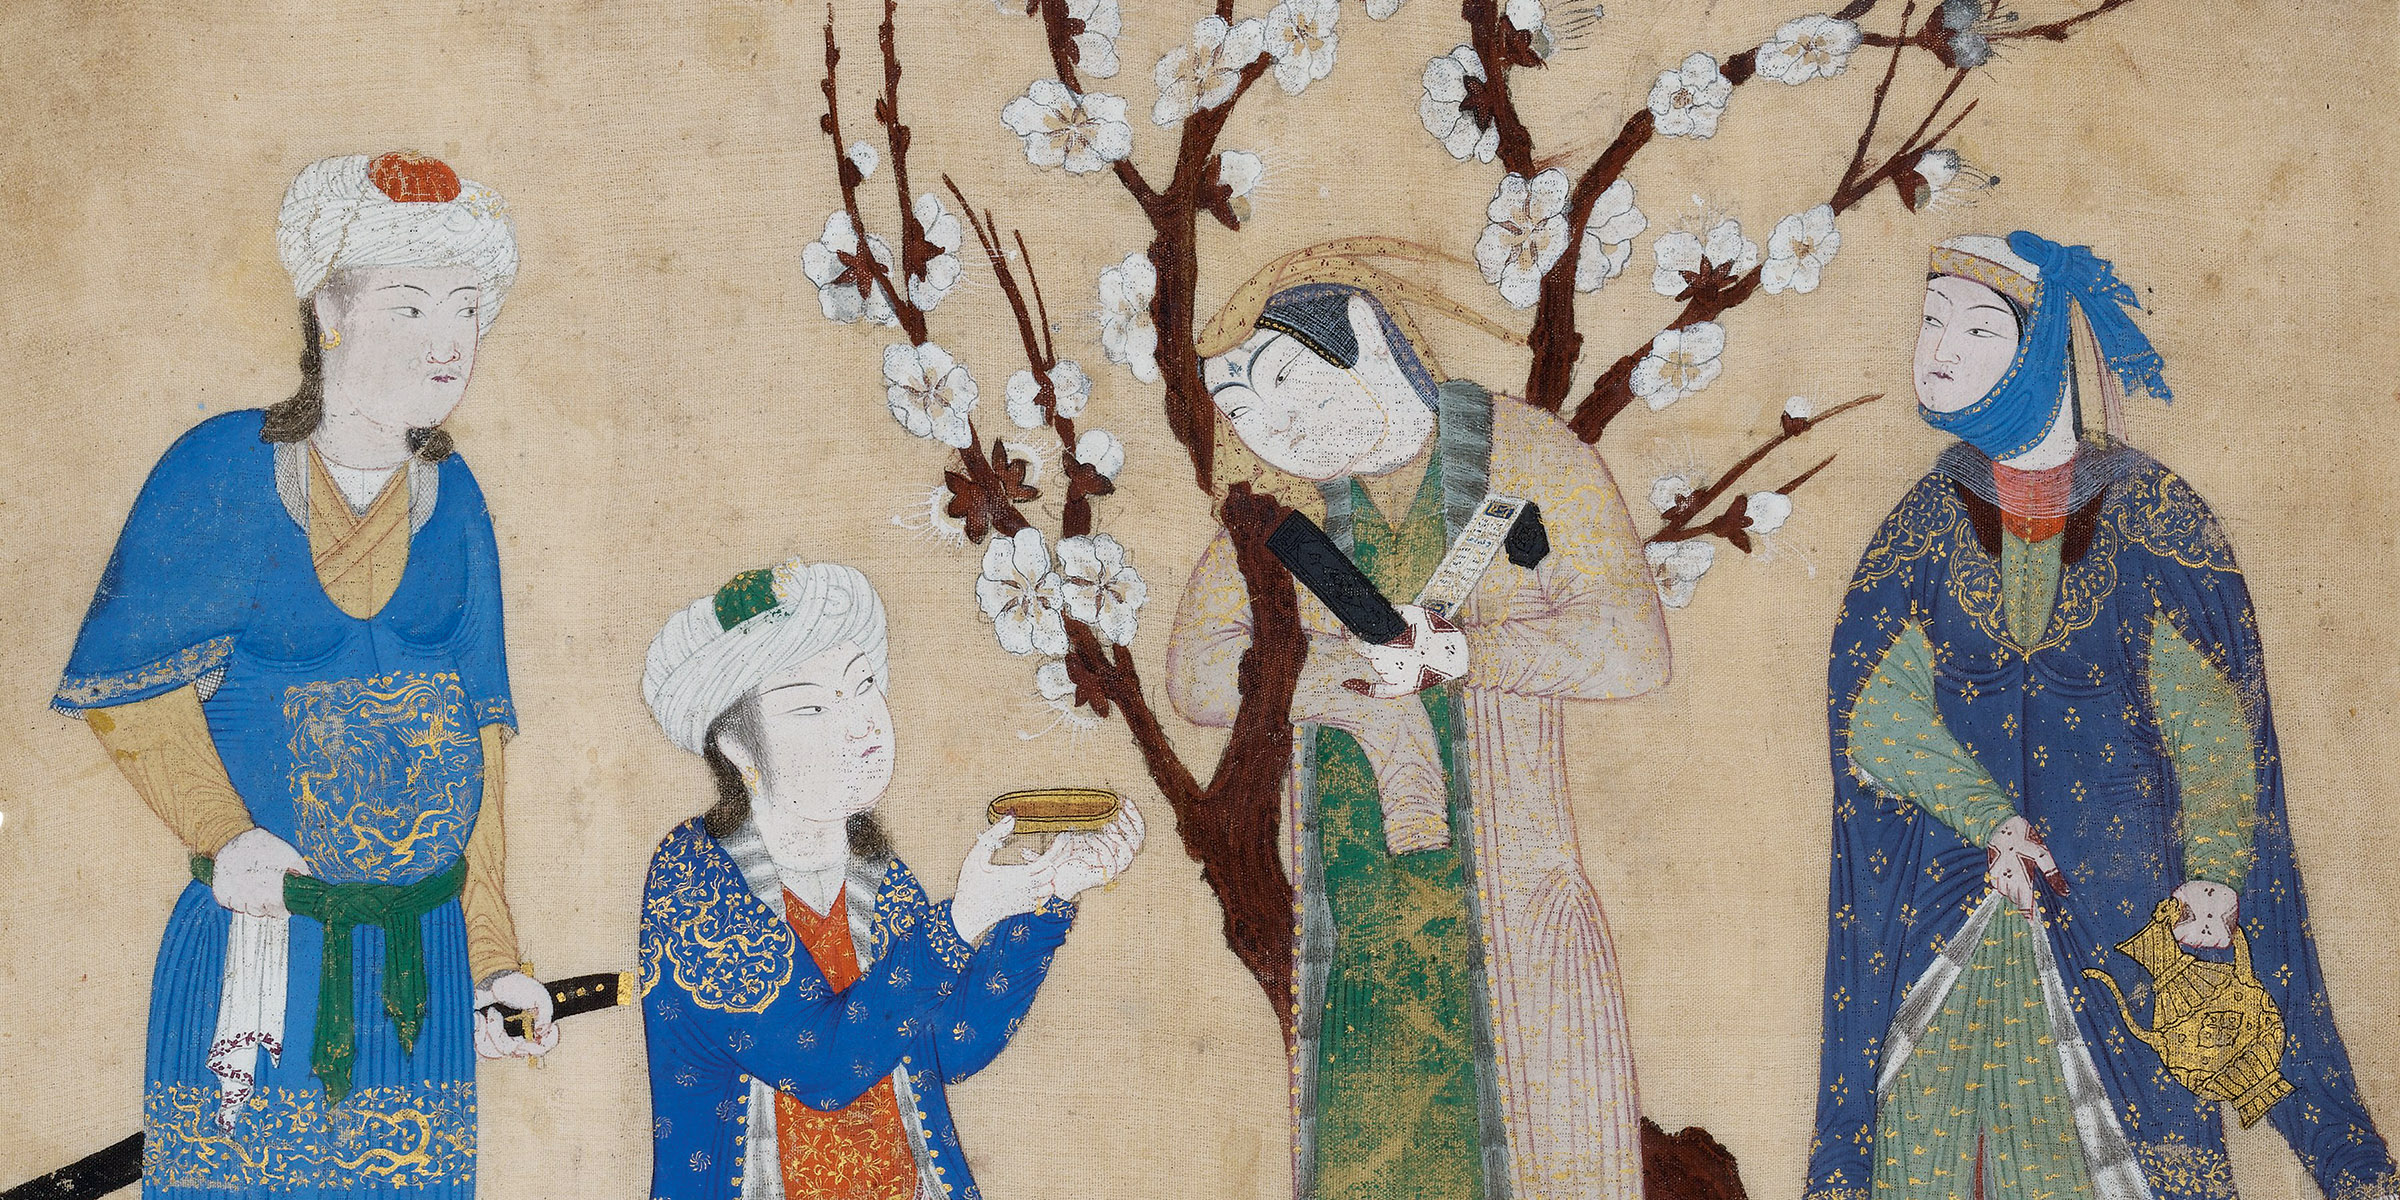 Wine Drinking in a Spring Garden, Persian silk album leaf, c. 1430.